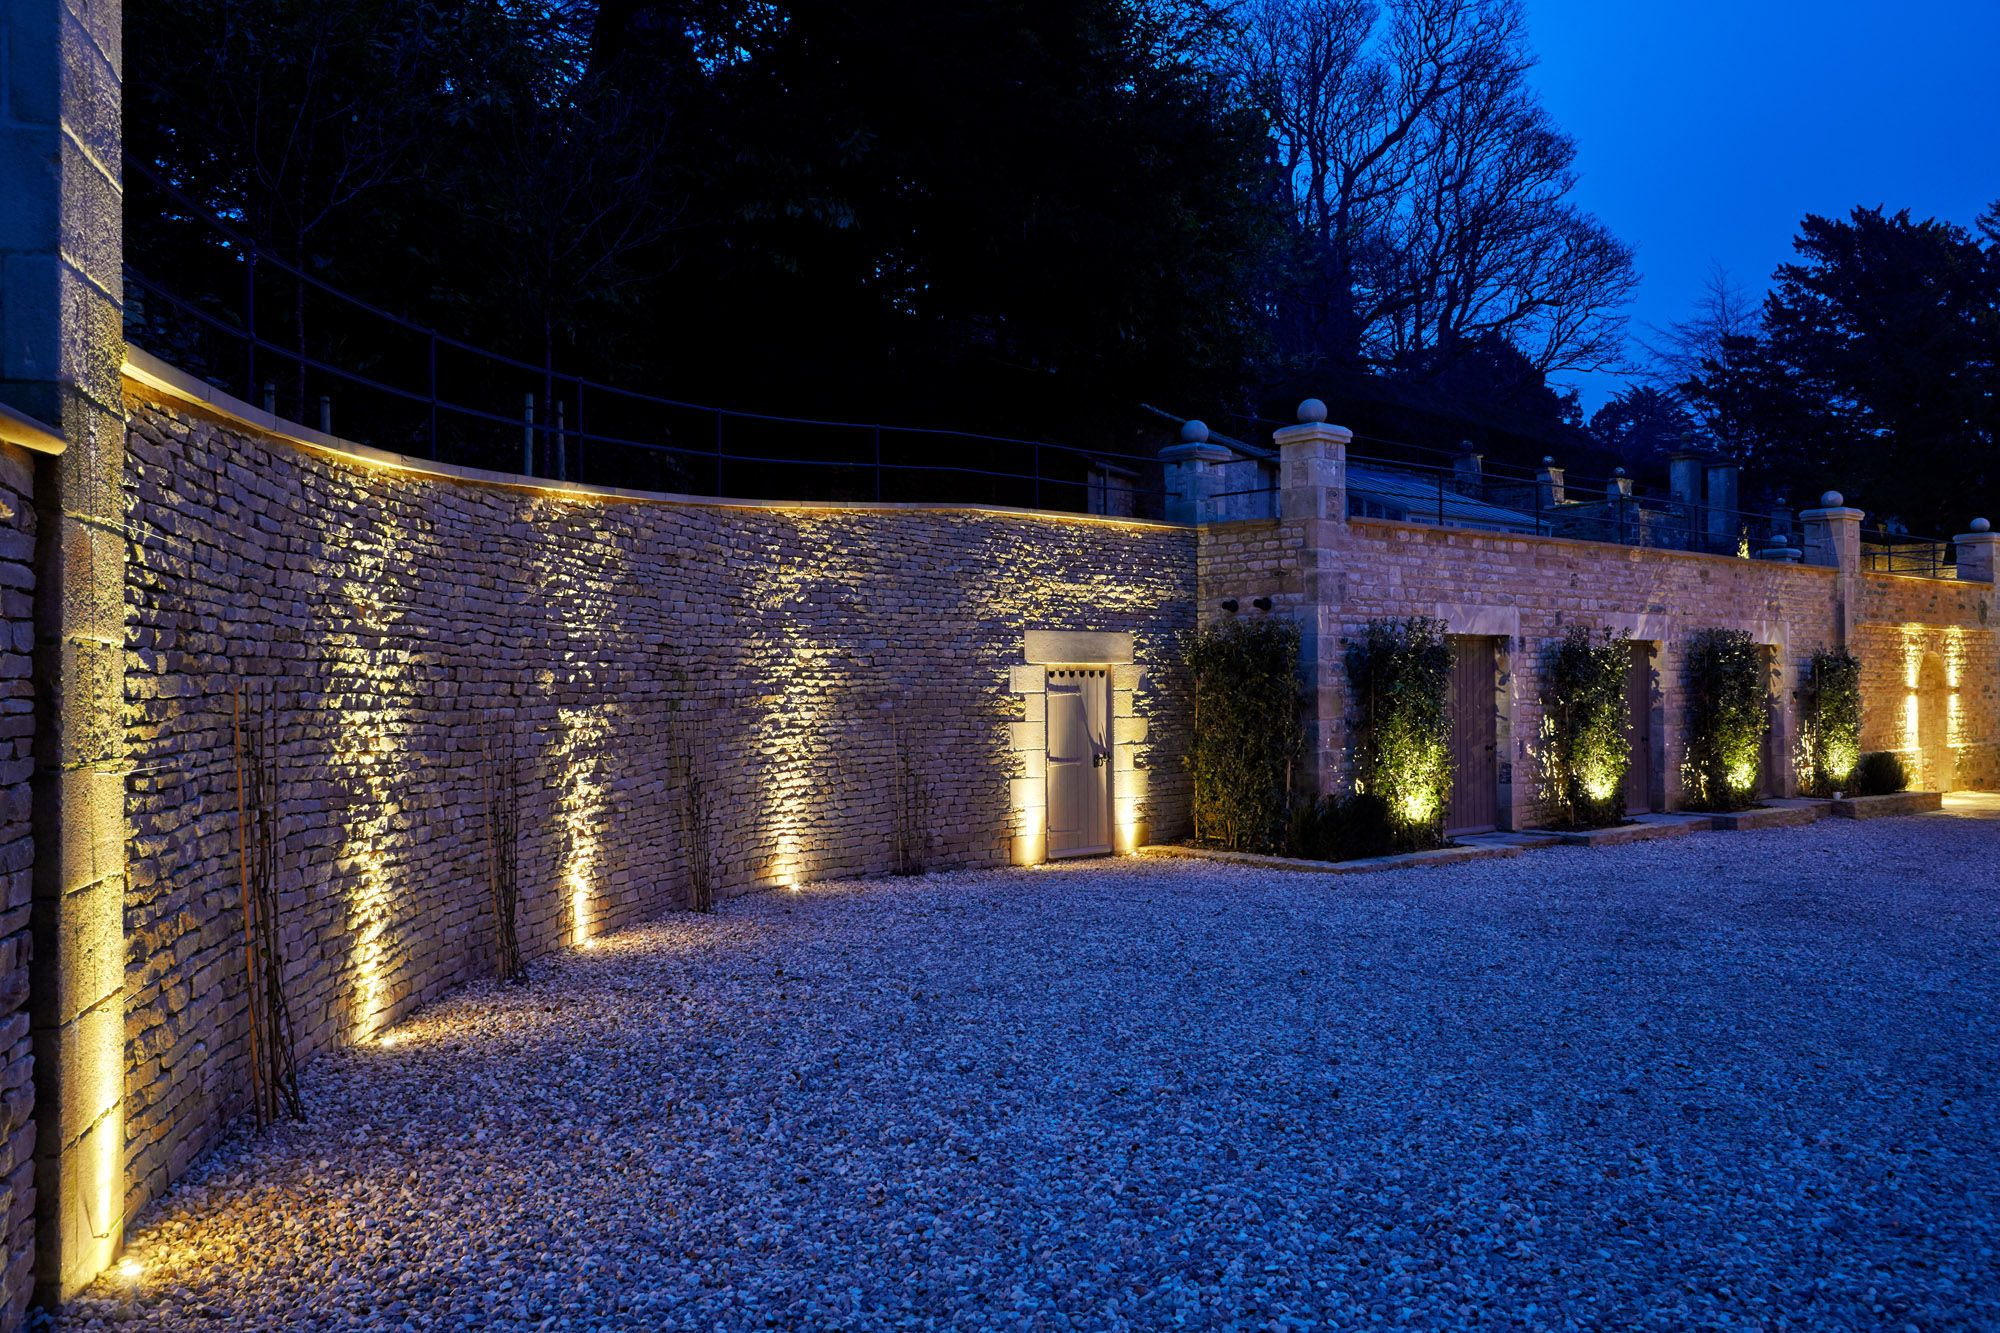 50 Inspirational Garden Lighting Ideas Garden wall